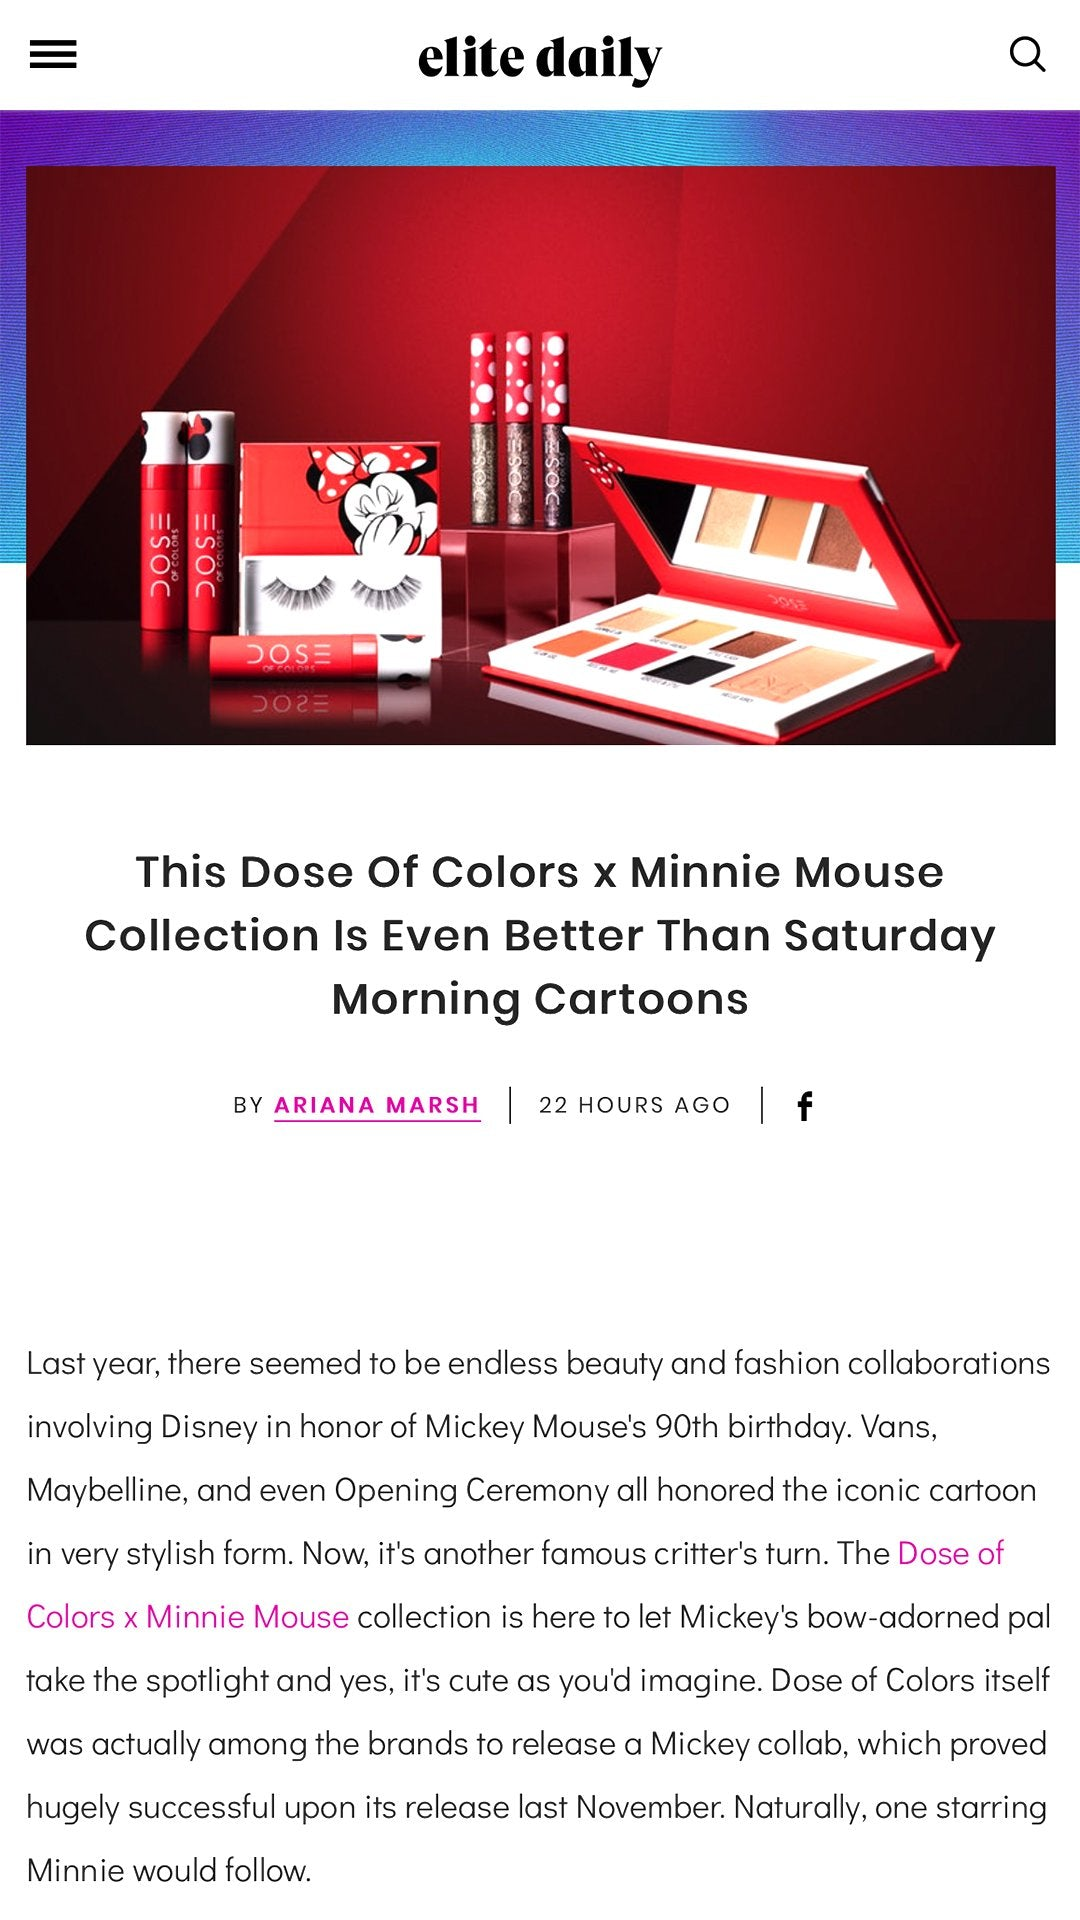 Elite Daily - Dose of Colors x Minnie Mouse